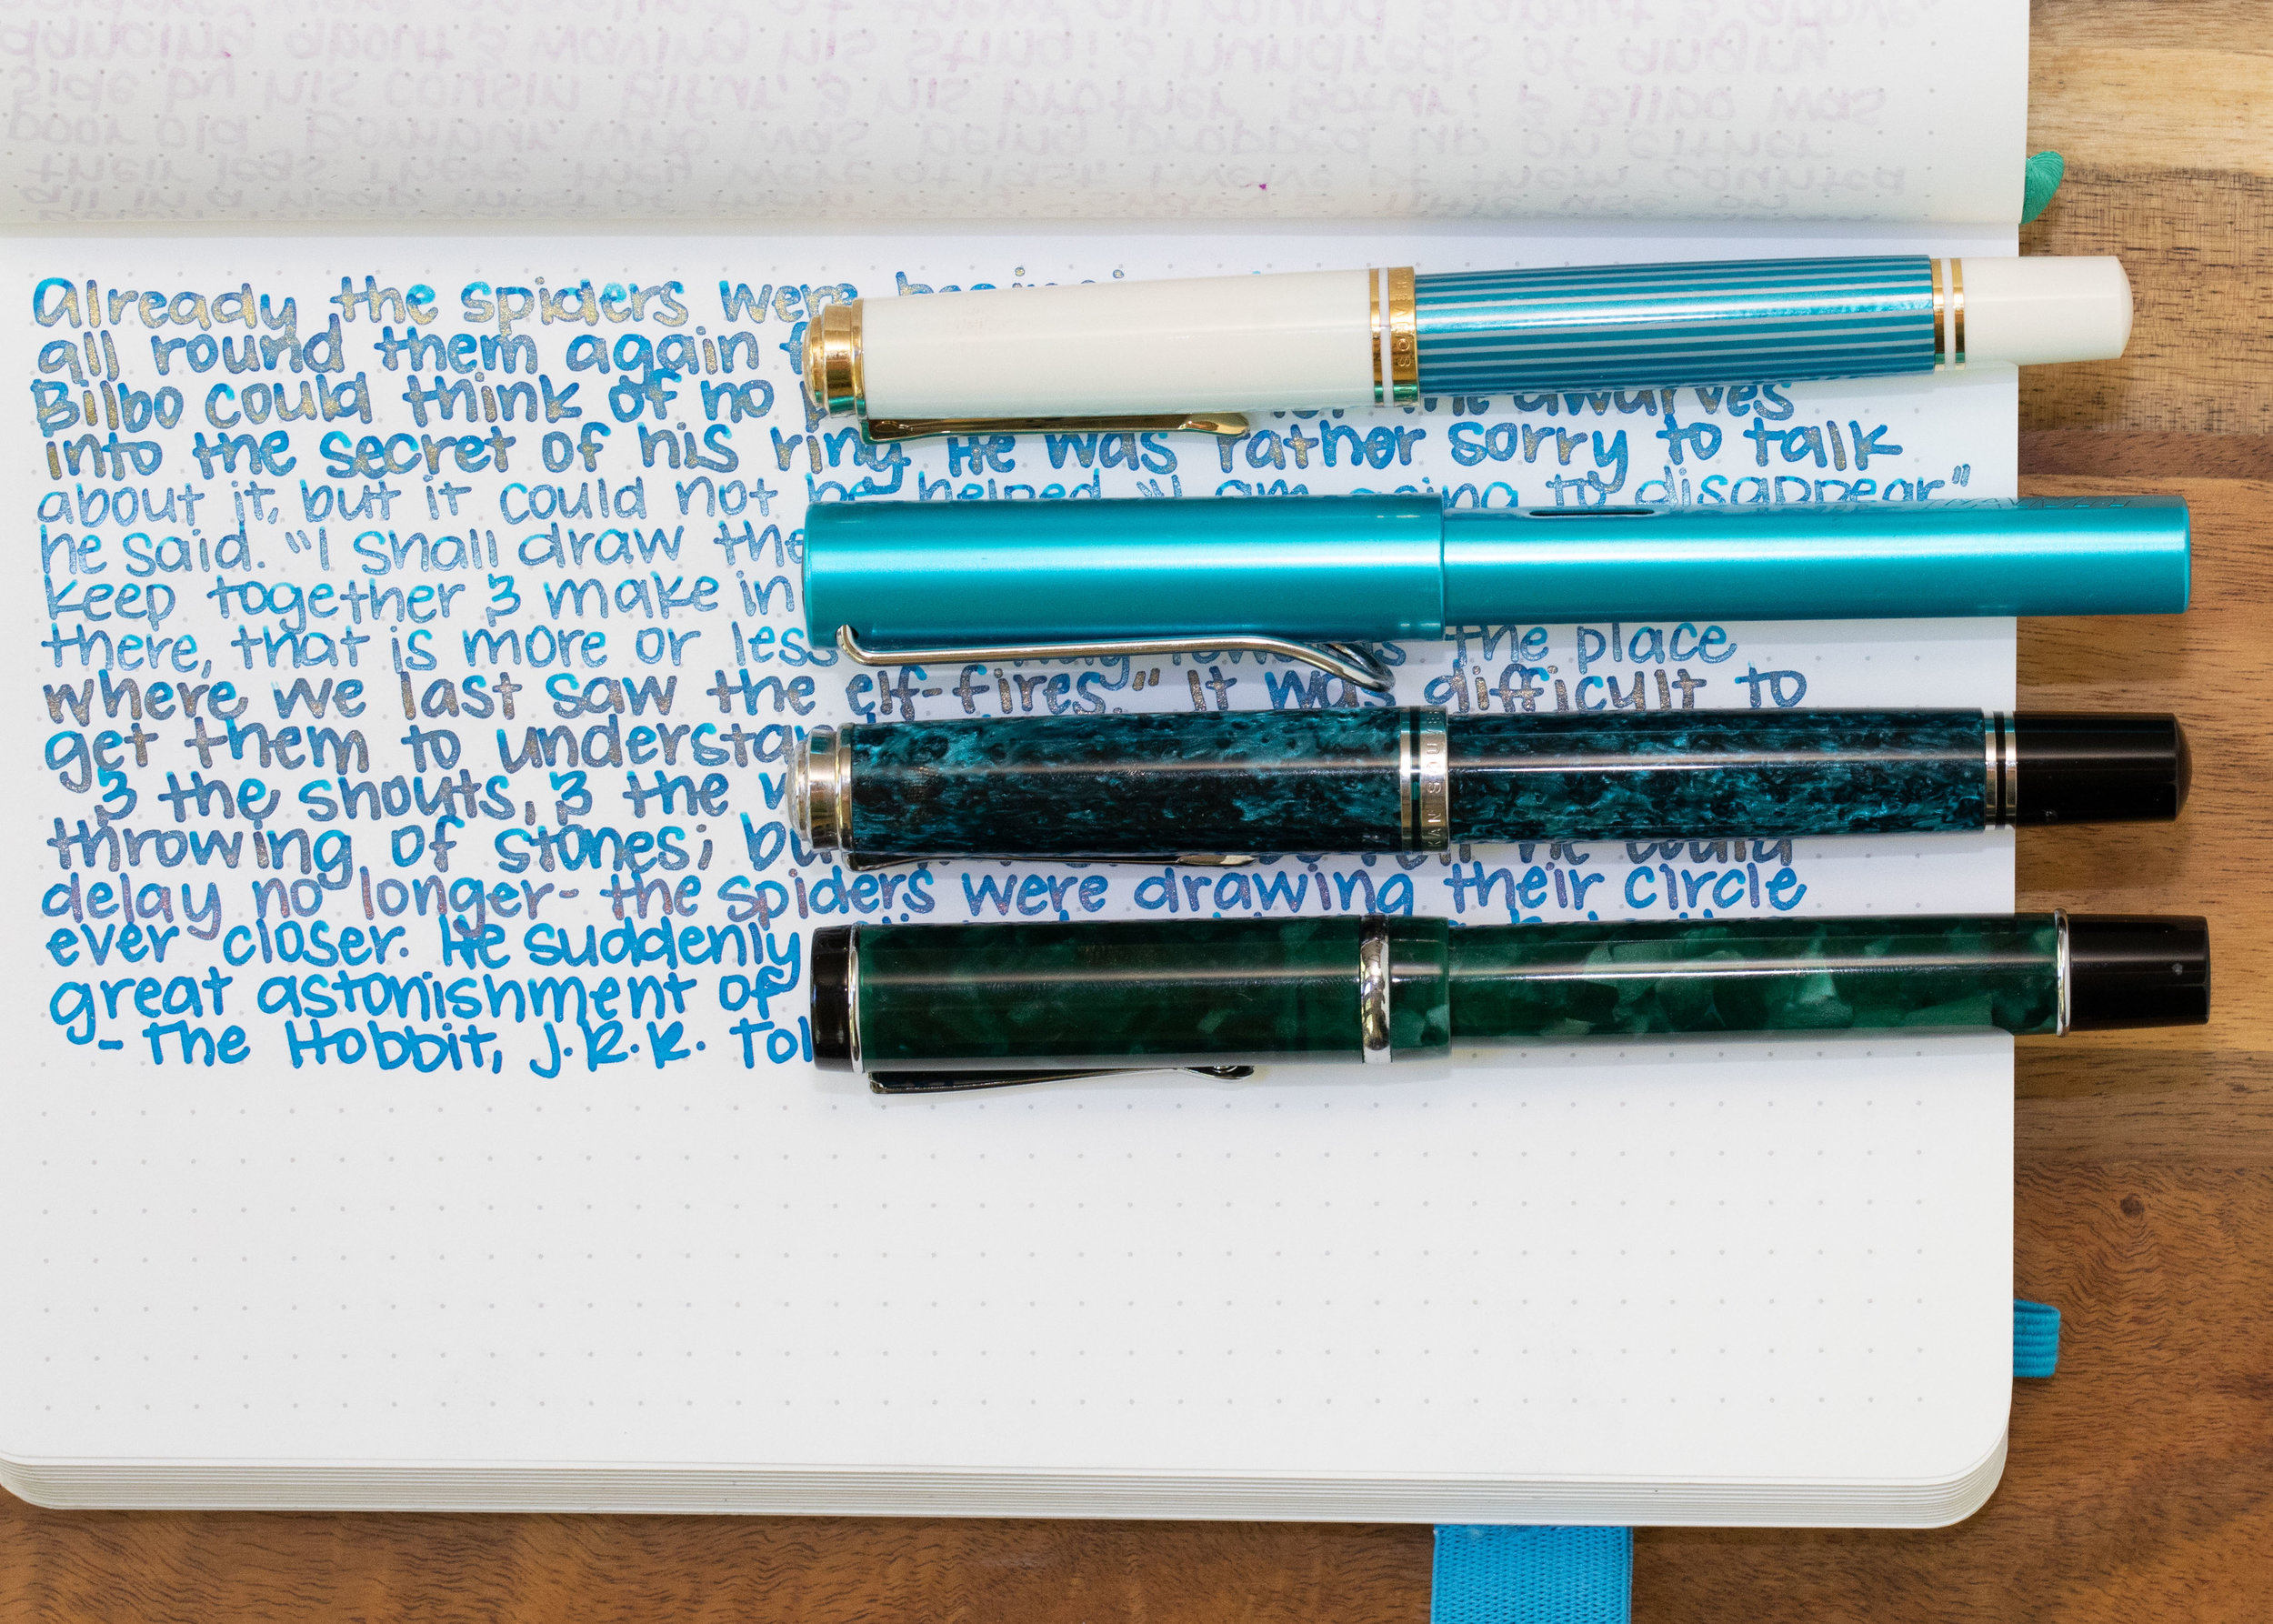 I used a broad Pelikan M600 Turquoise with the Gold version, a medium Lamy Al-Star Pacific Blue for the Silver version, a broad Pelikan M805 Ocean Swirl for the Bronze version, and a broad Conklin Durograph Forest Green for the Copper version. I think I prefer the silver version out of the four. All had some clogging issues, even with the wet flow.